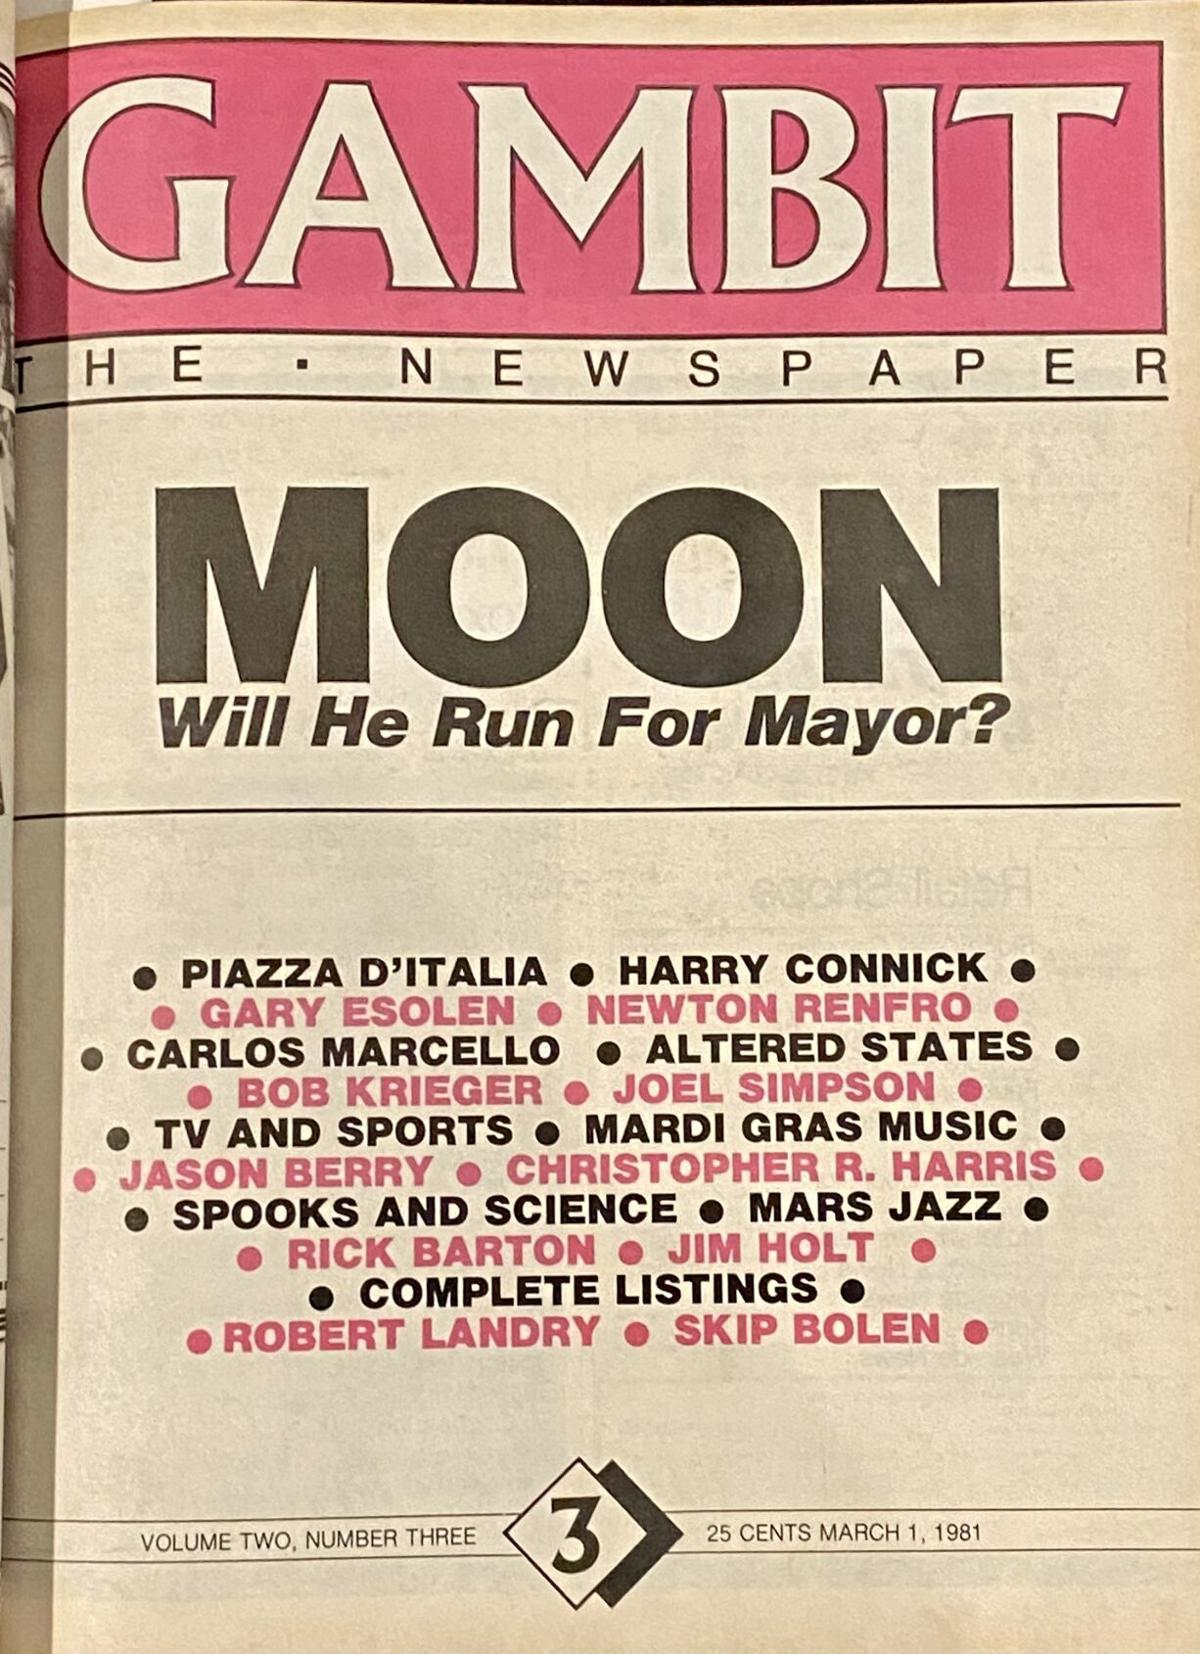 1981, March 1